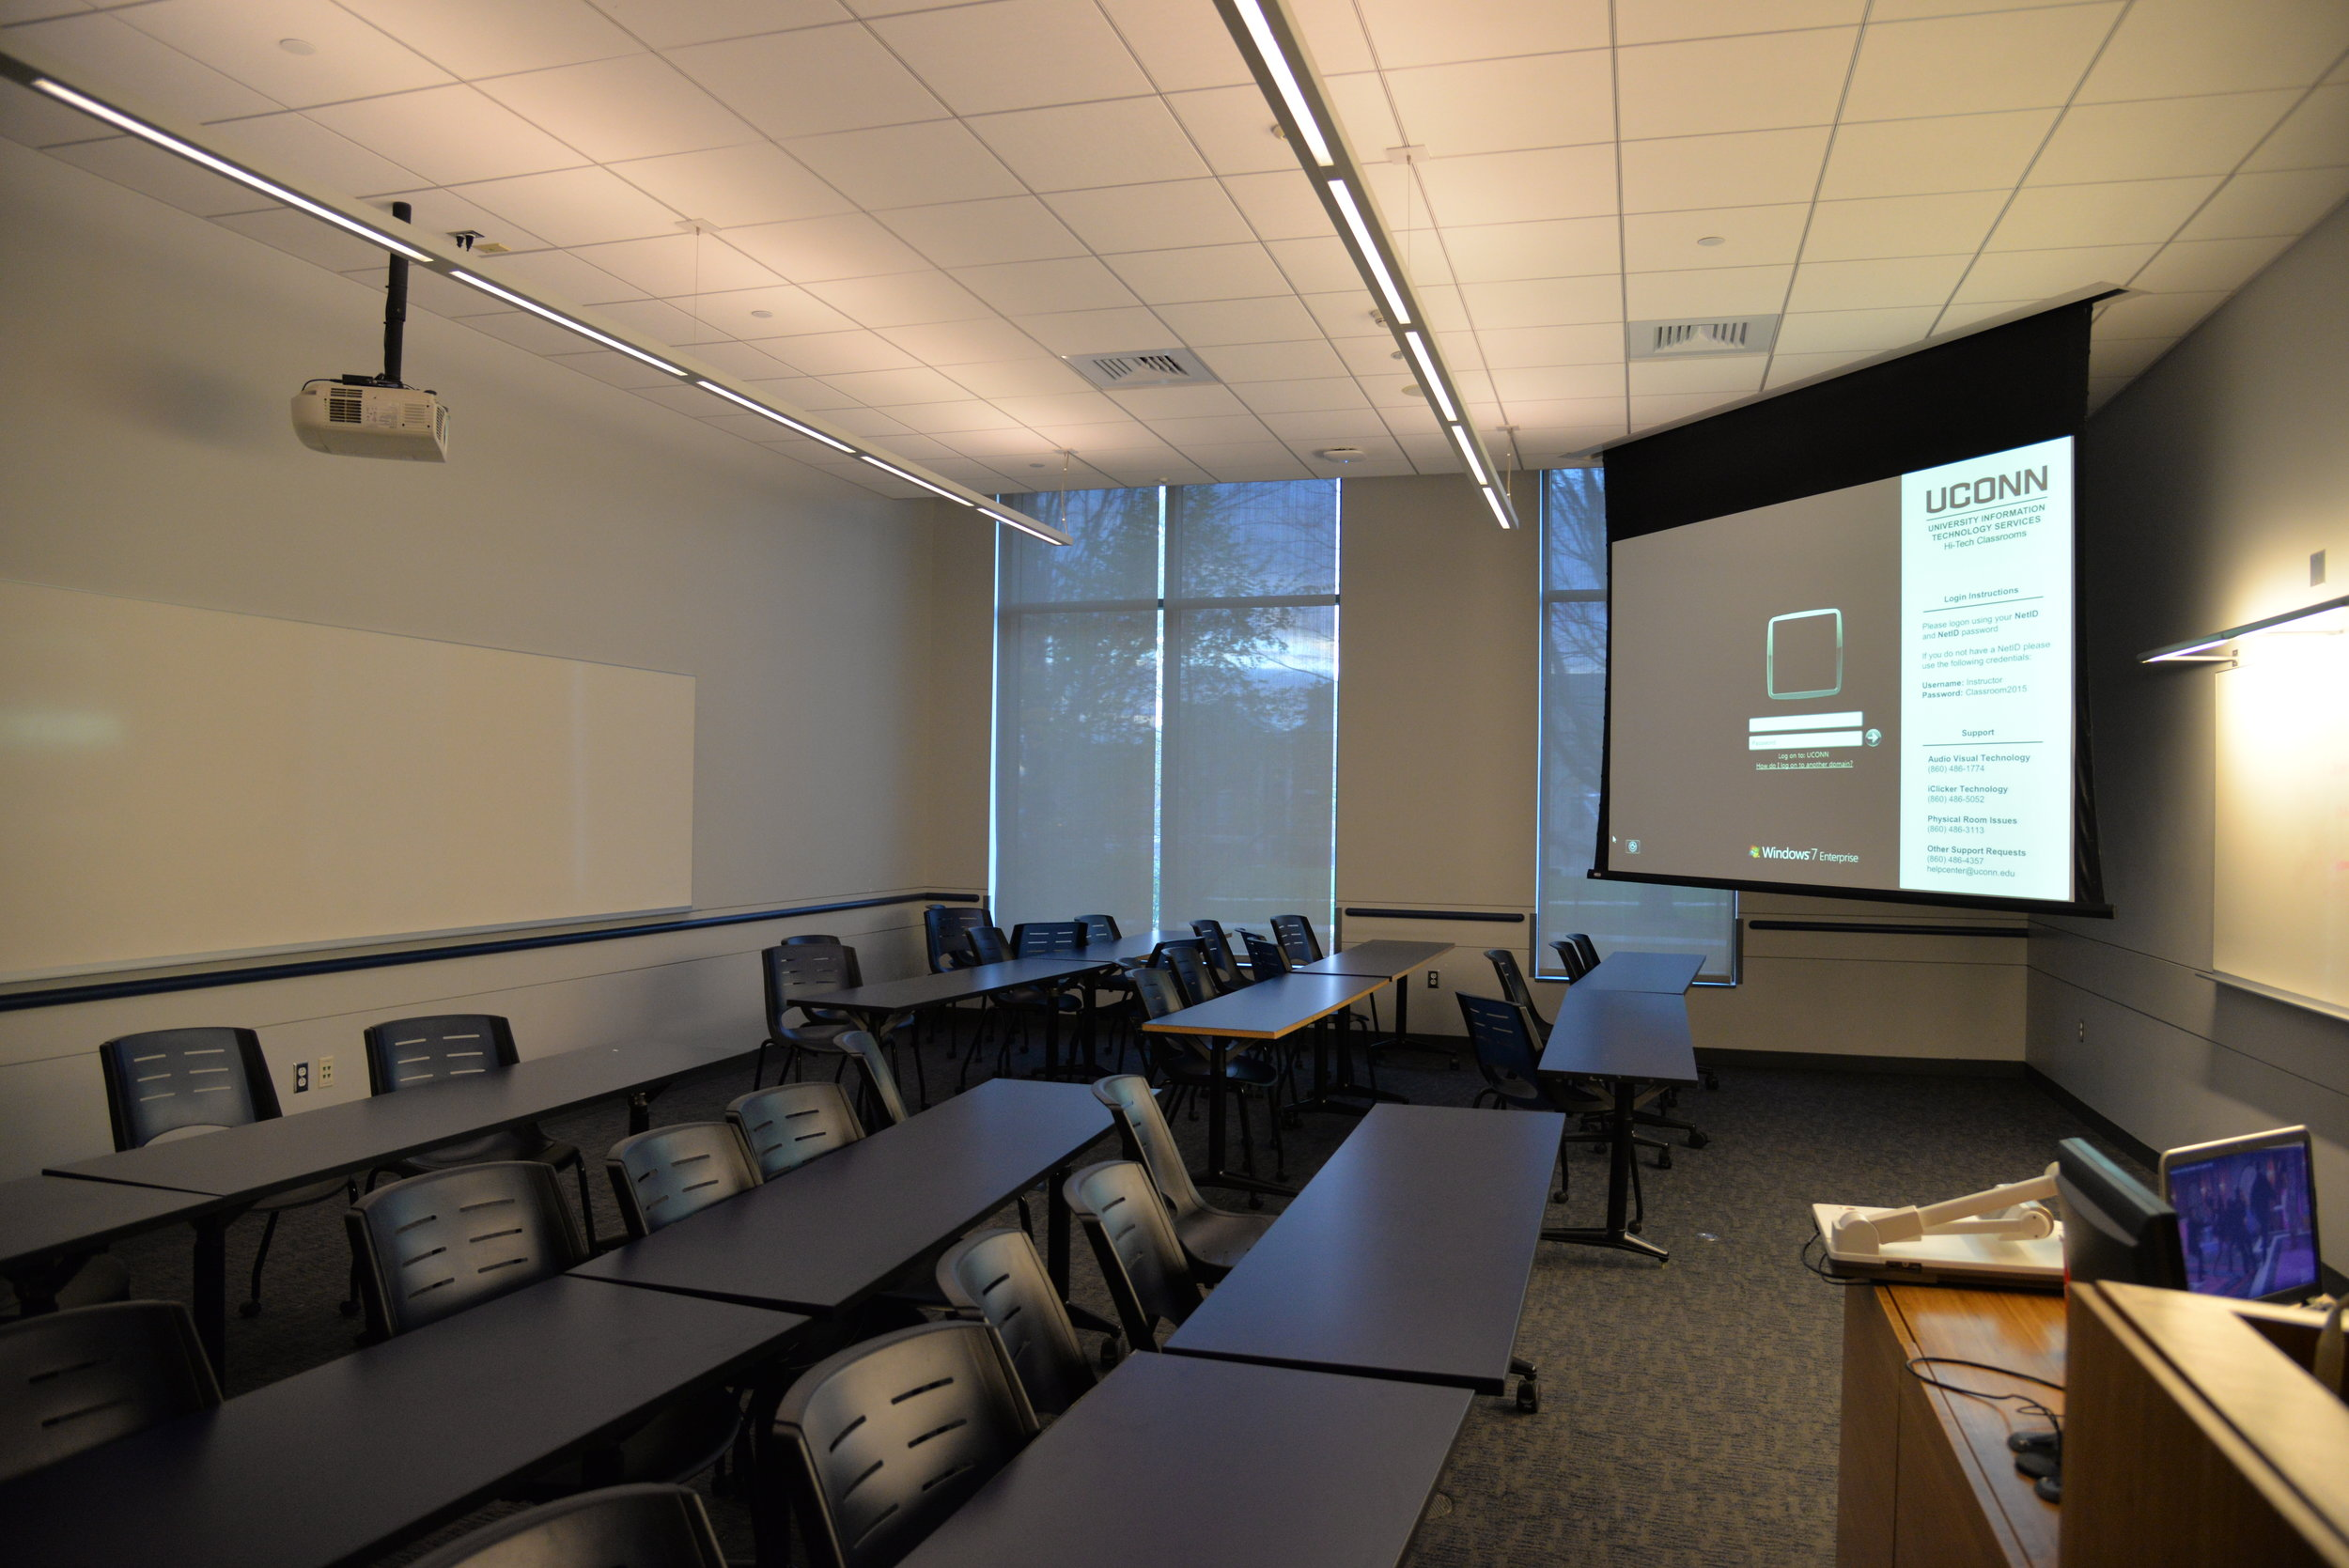 UConn lecture hall. (File Photo/The Daily Campus)